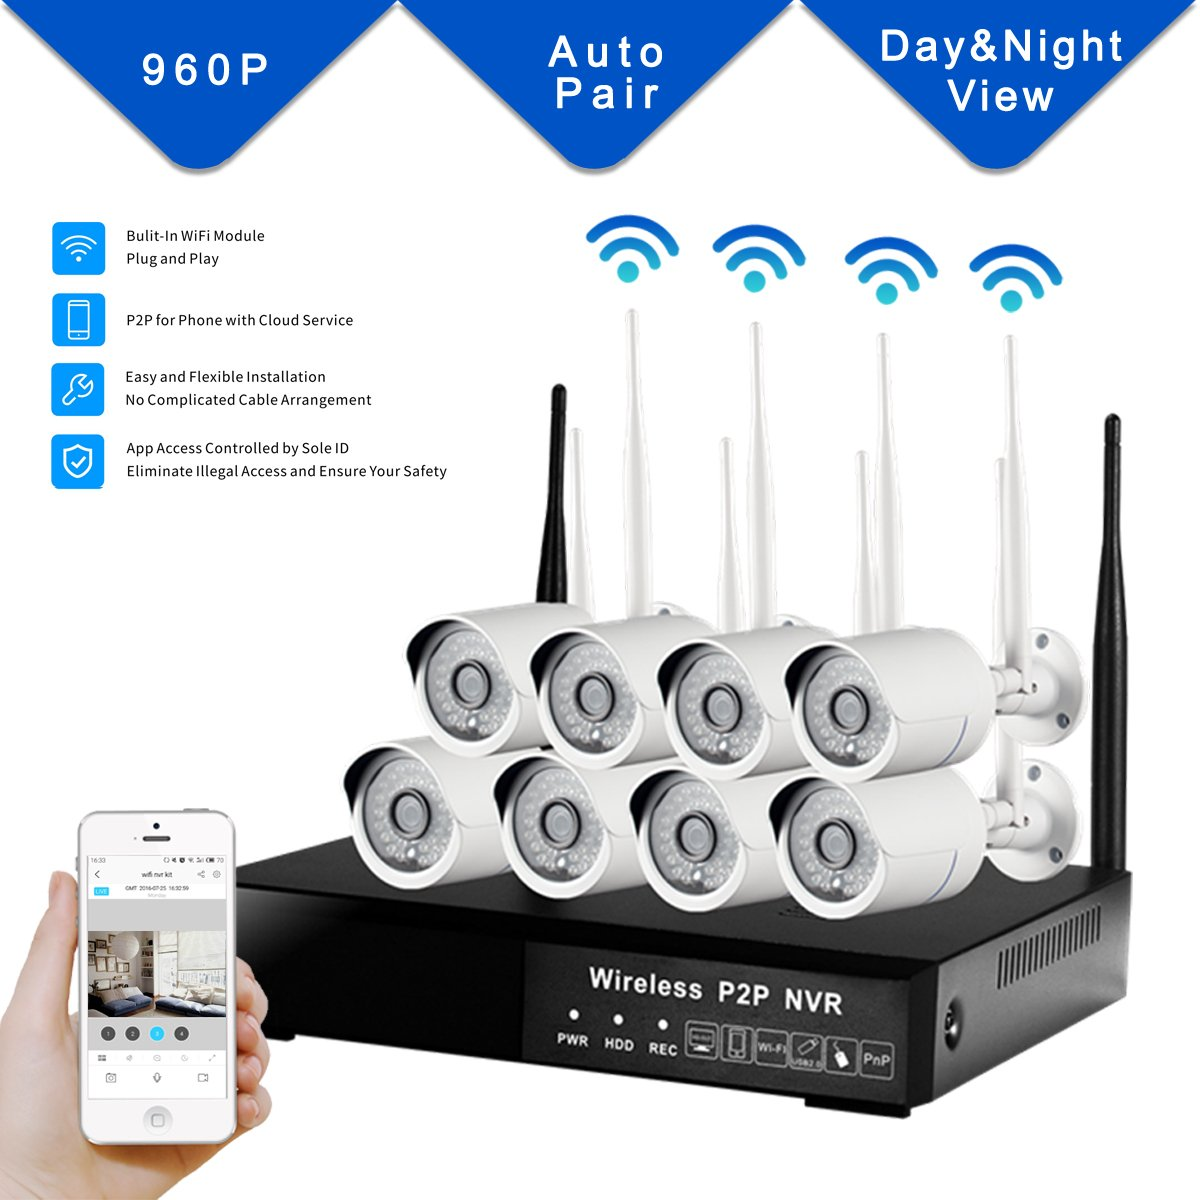 DOHAOOE All-in-One Hi3535 8CH NVR 1.3MP 500M WiFi Range Waterproof IPC WiFi Kit 960P Wireless Input Outdoor Network Home Surveillance Security Camera System